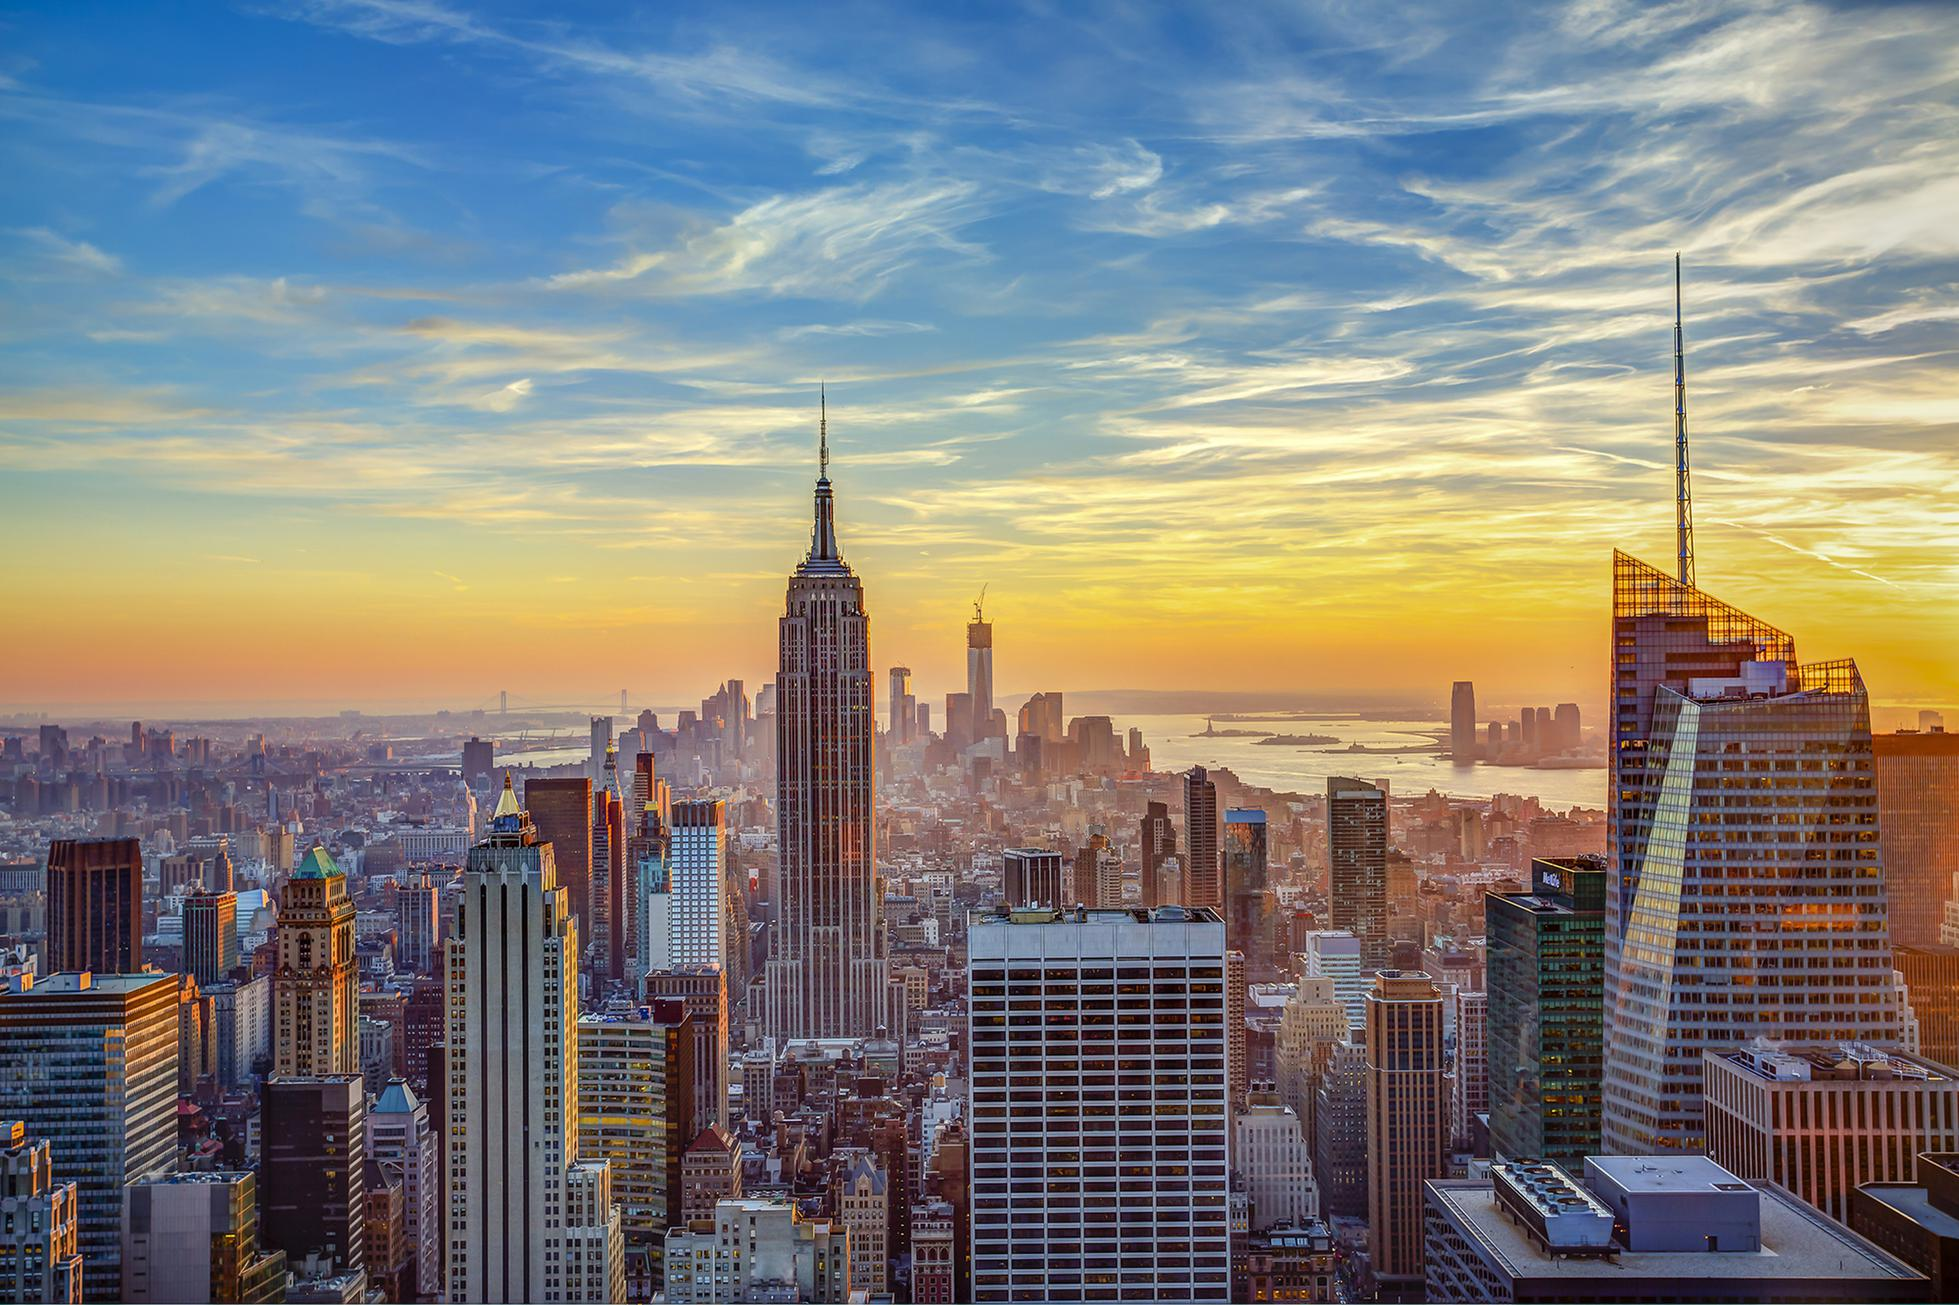 Aerial view of city, New York, New York State, USA